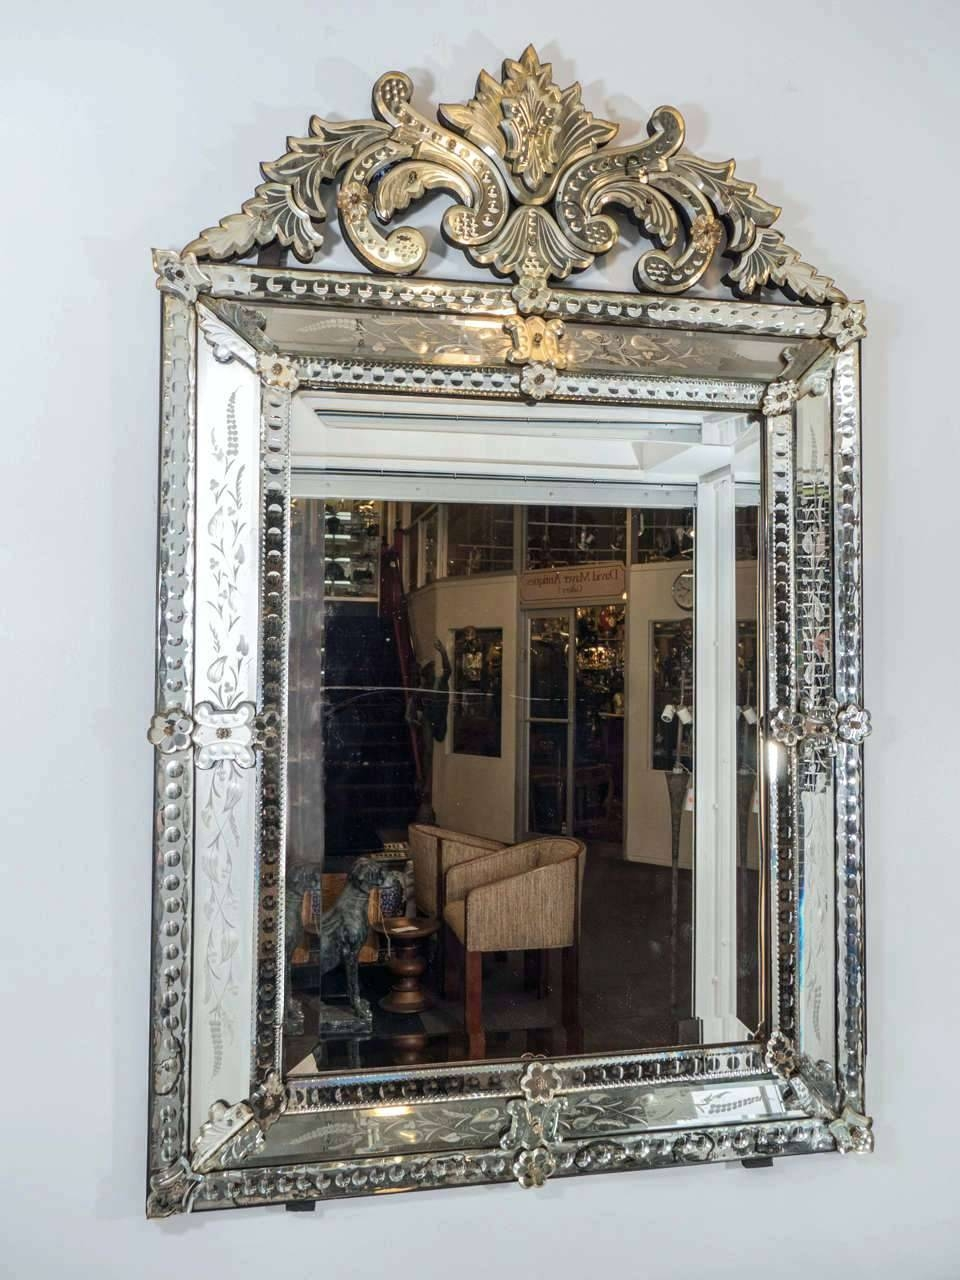 Four Seasons Wall Venetian Mirror Engraved With Murano Glassextra With Regard To Long Venetian Mirrors (View 10 of 25)